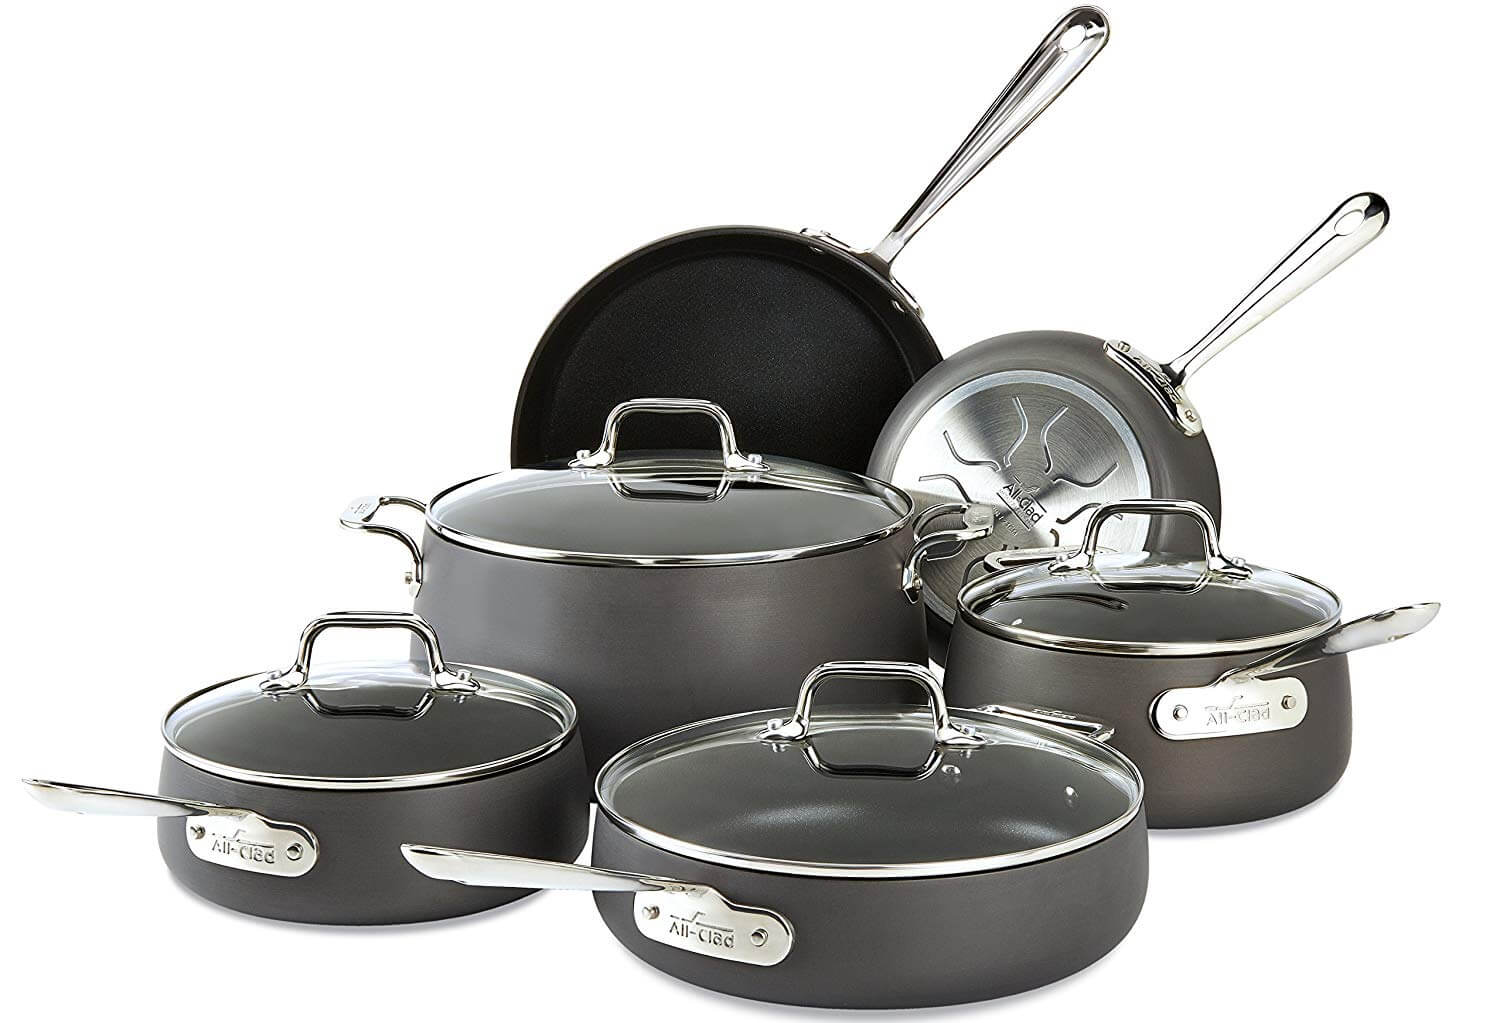 All-Clad E785SC64 Hard Anodized Non-stick Cookware Set